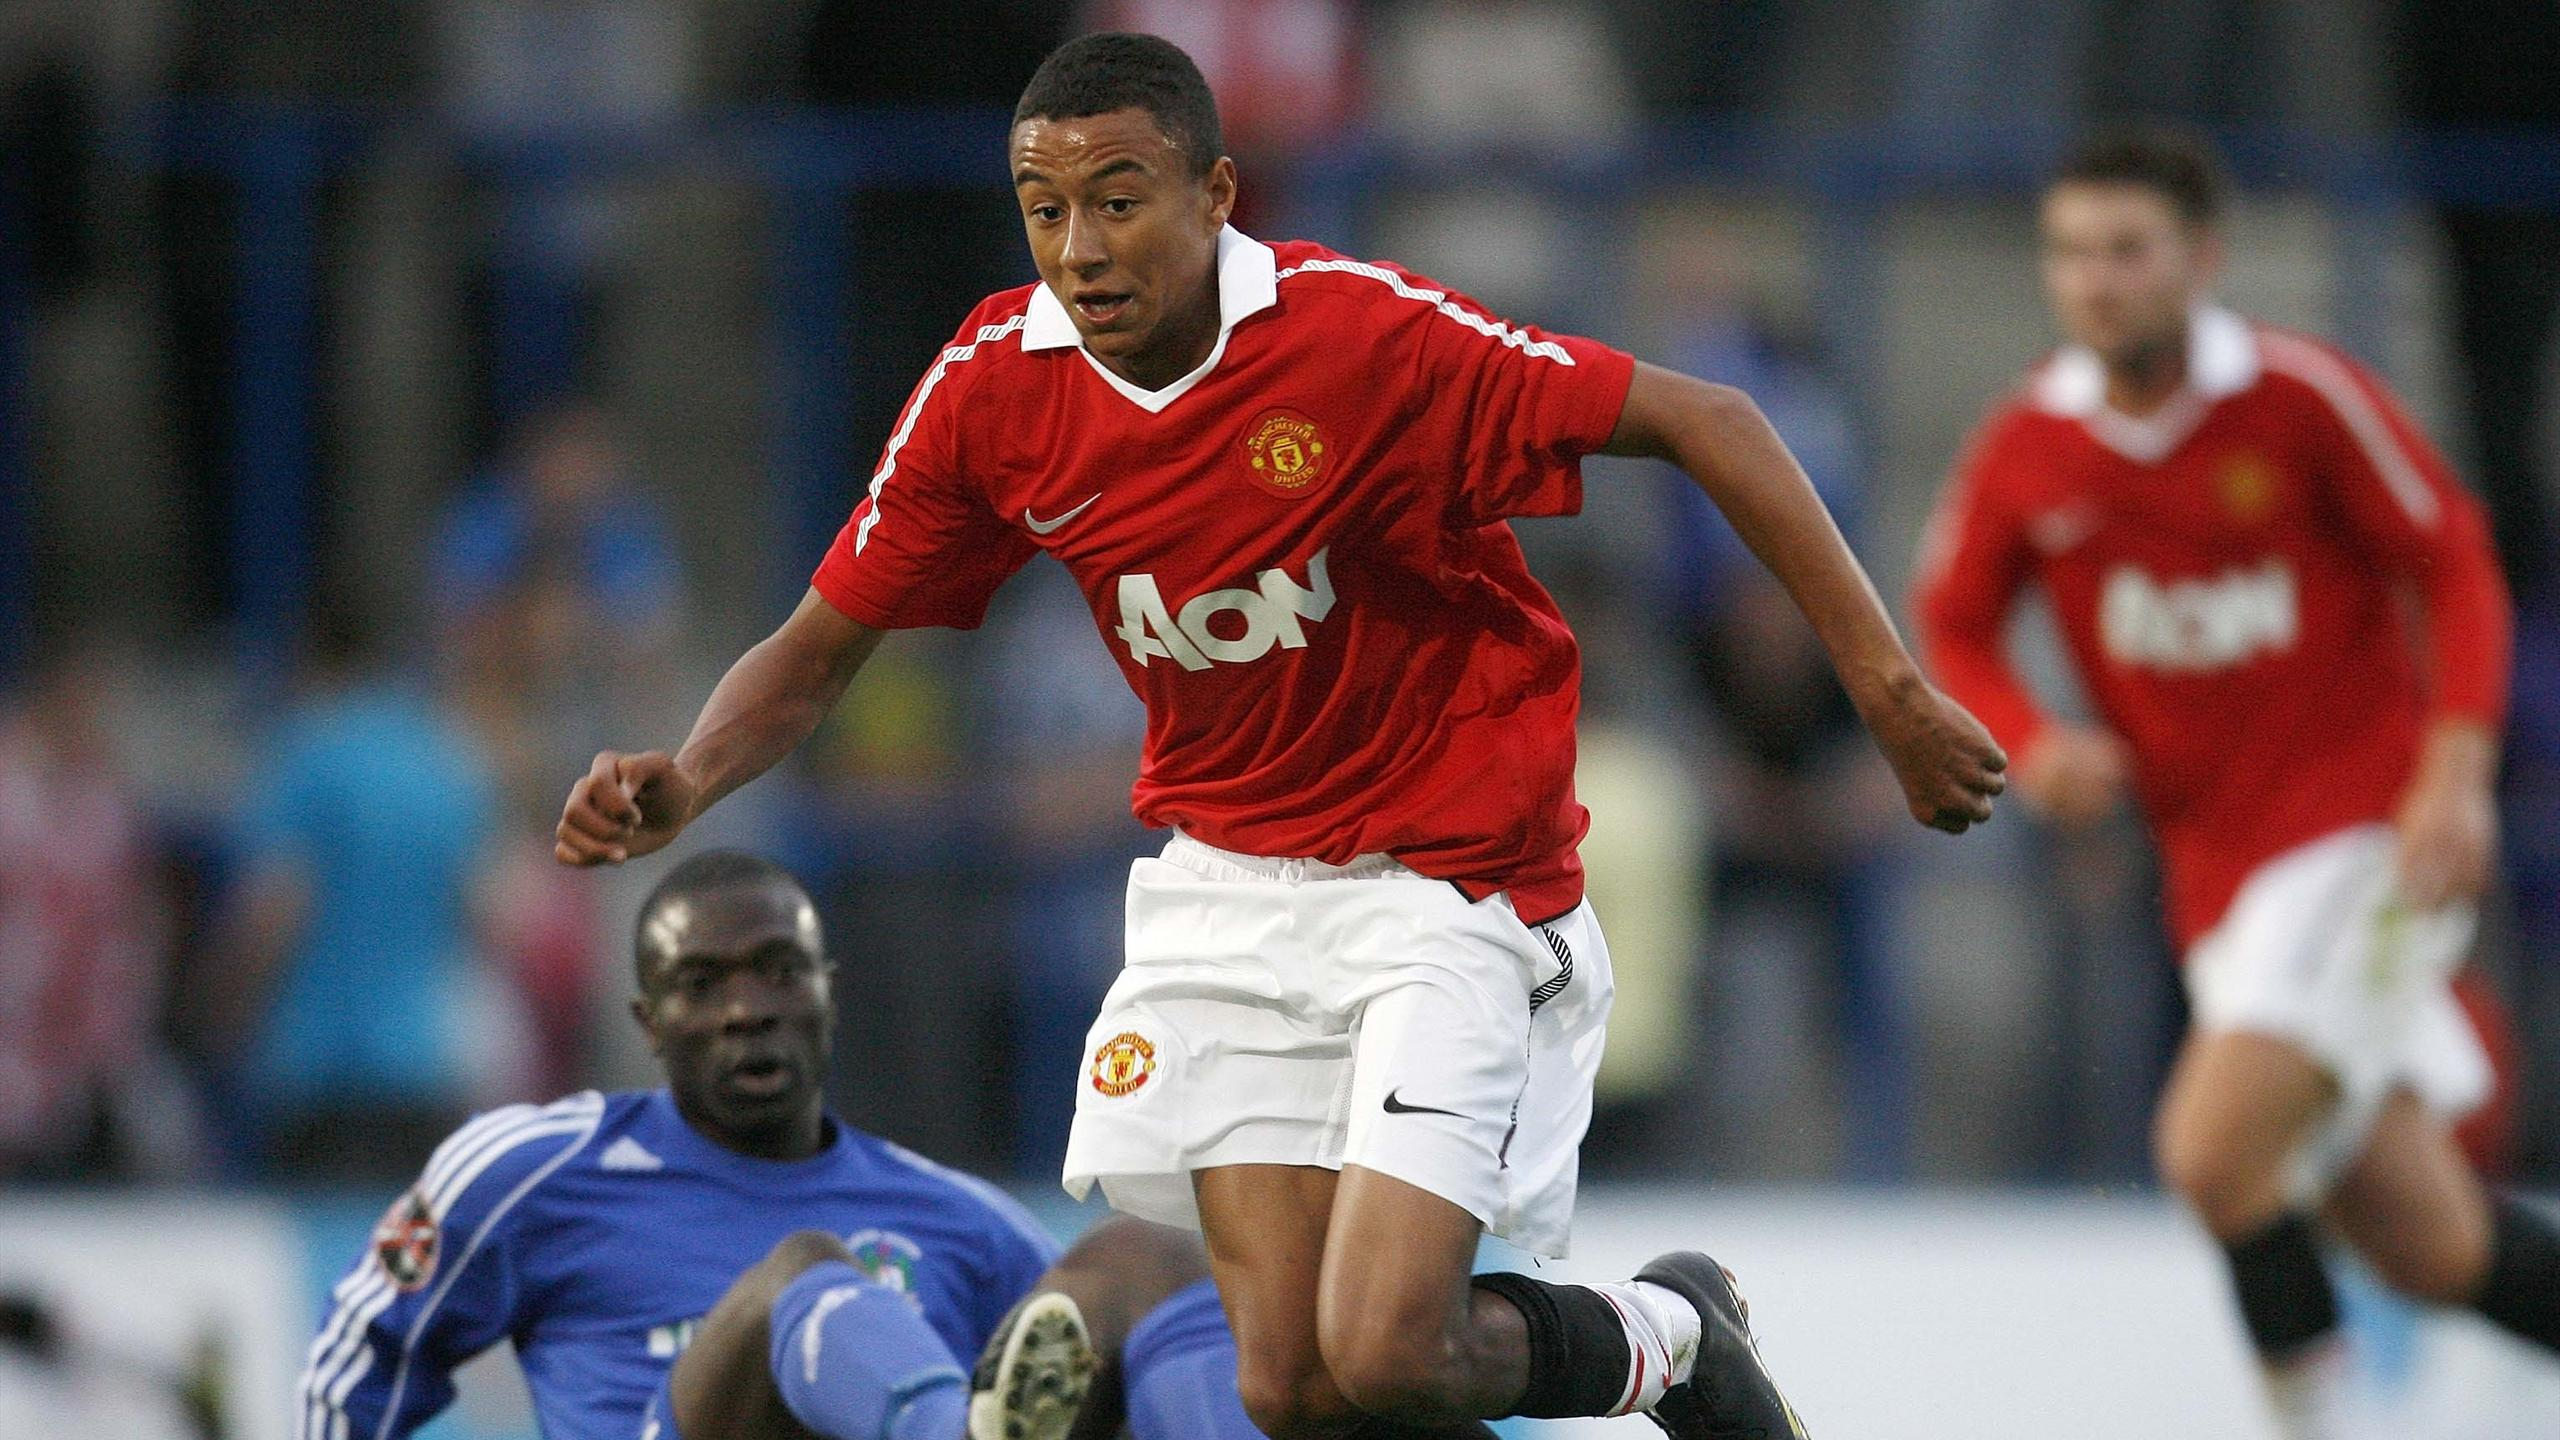 The making of Jesse Lingard   World Cup 2018   Football   Eurosport UK Jesse Lingard in action for Manchester United s youth team in 2010